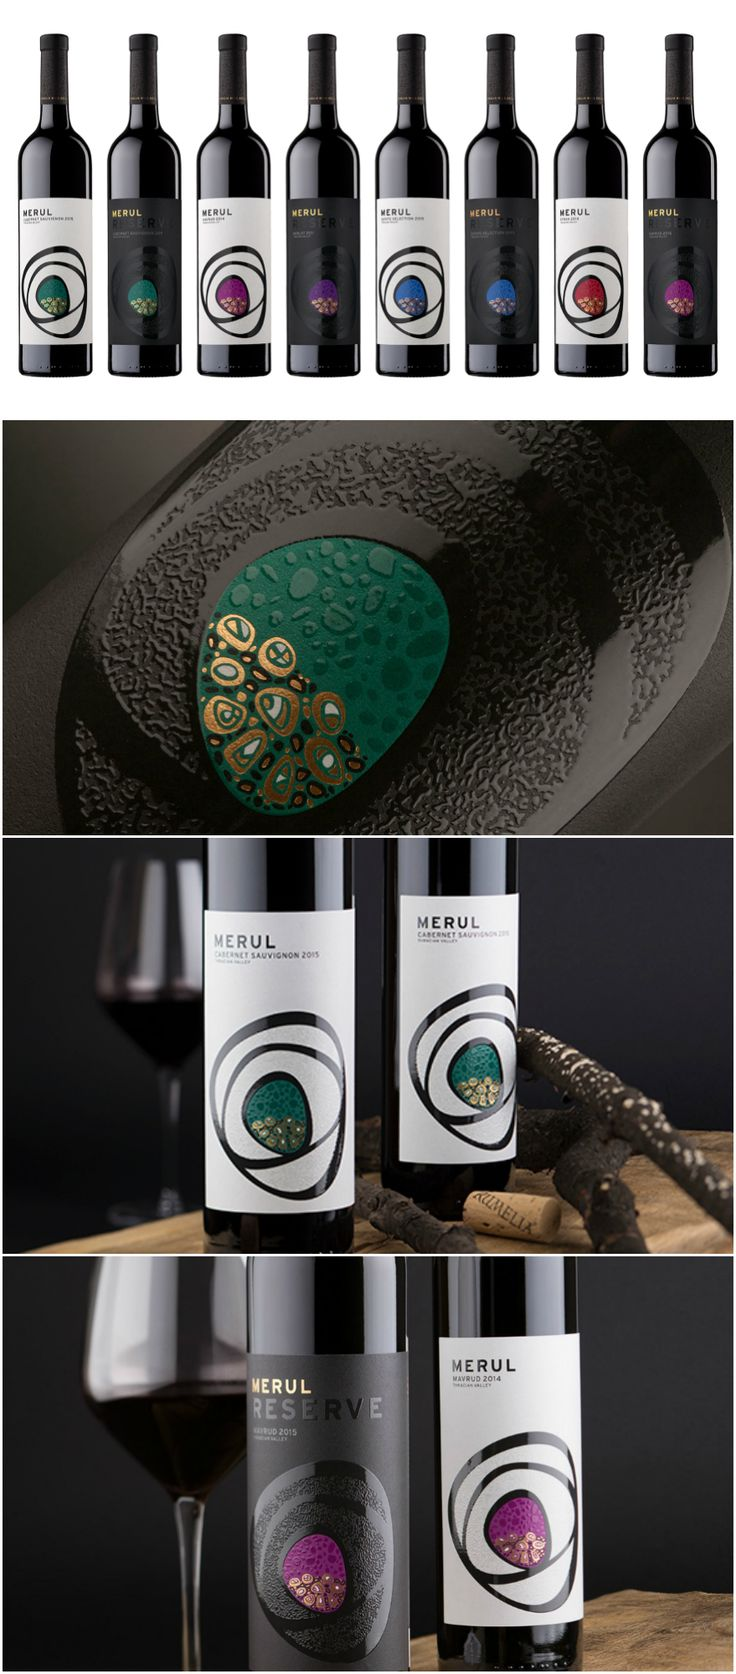 Design Agency: the Labelmaker Brand / Project Name: Merul Wine Labels Location: Bulgaria Category: #wine #drink